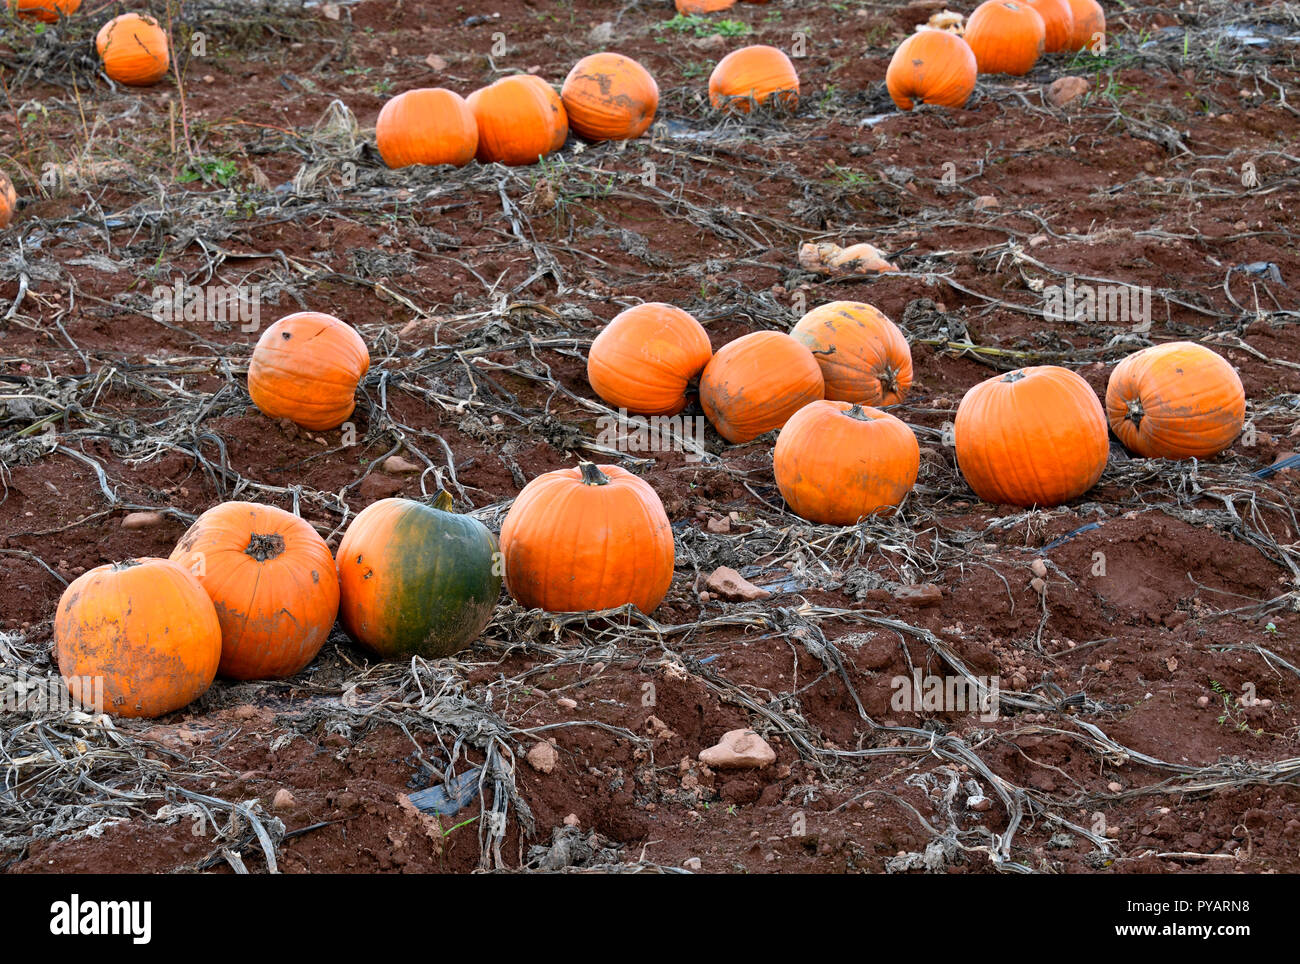 A farm field with pumpkins ready for harvest in rural Sussex New Brunswick Canada - Stock Image